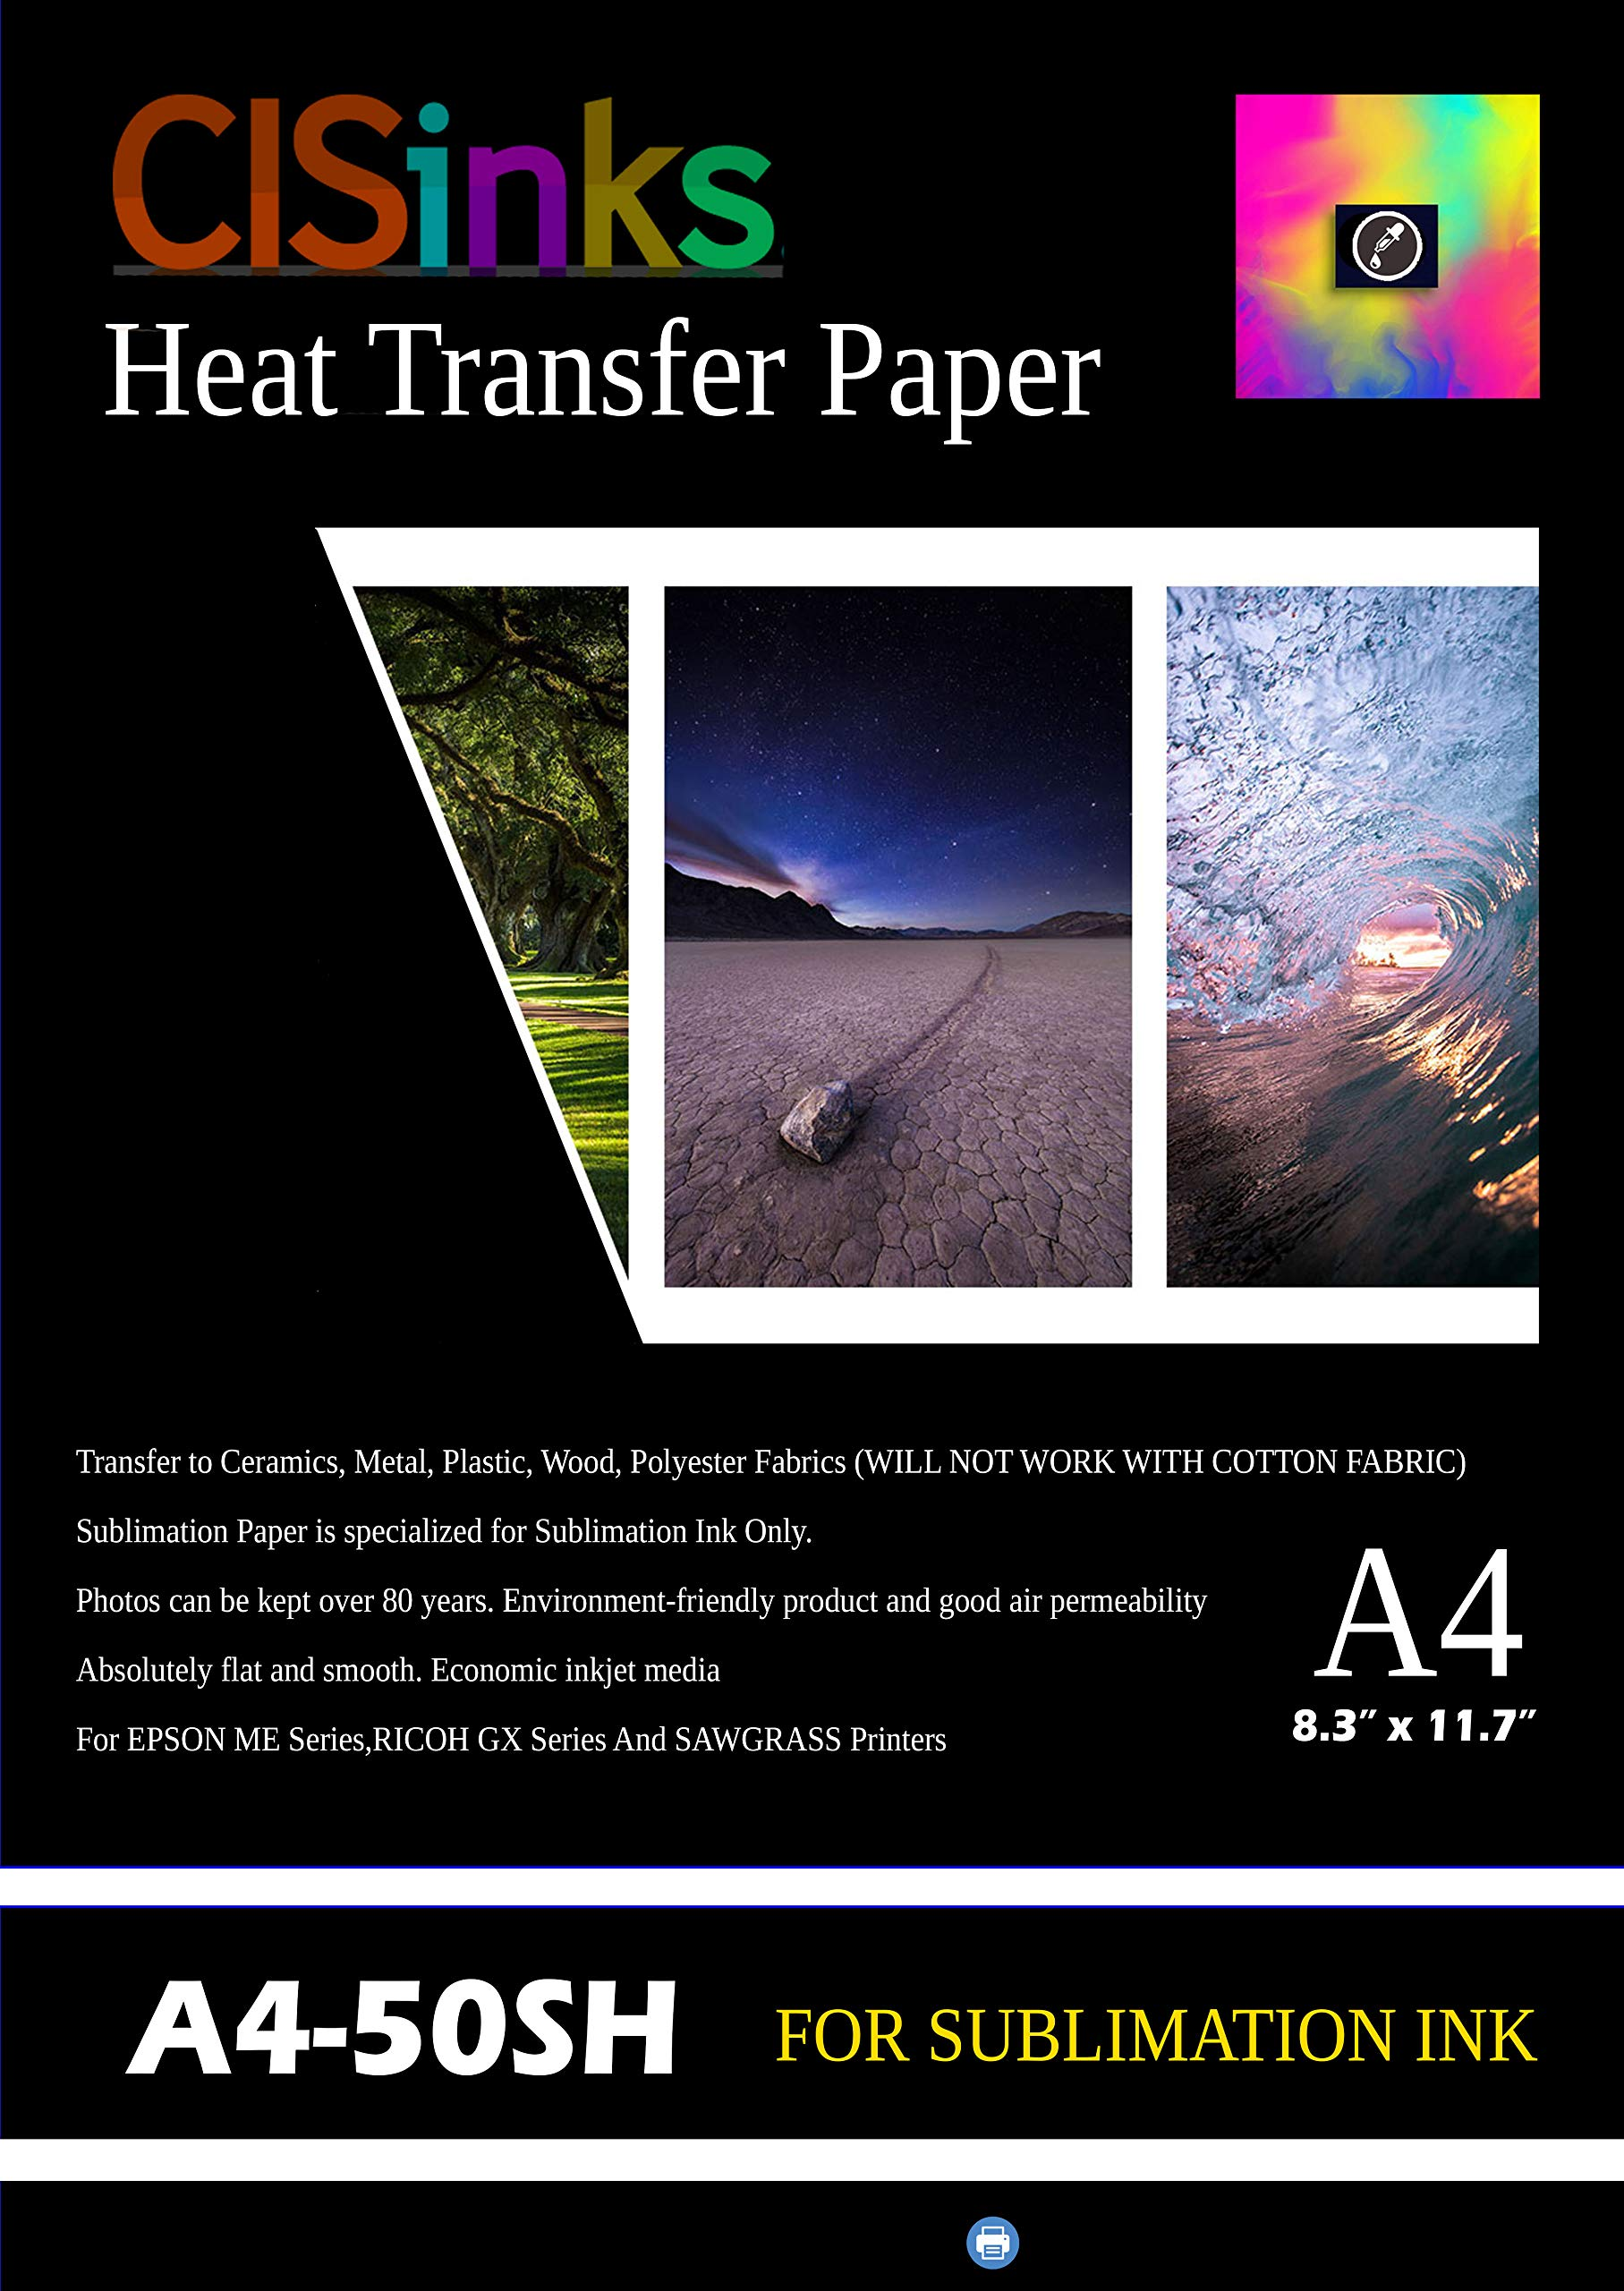 """CISinks A4 Sublimation Ink Transfer Paper (50 Sheets) 8.27"""" x 11.7"""" for EPSON ME Series RICOH GX Series and SAWGRASS Printers"""